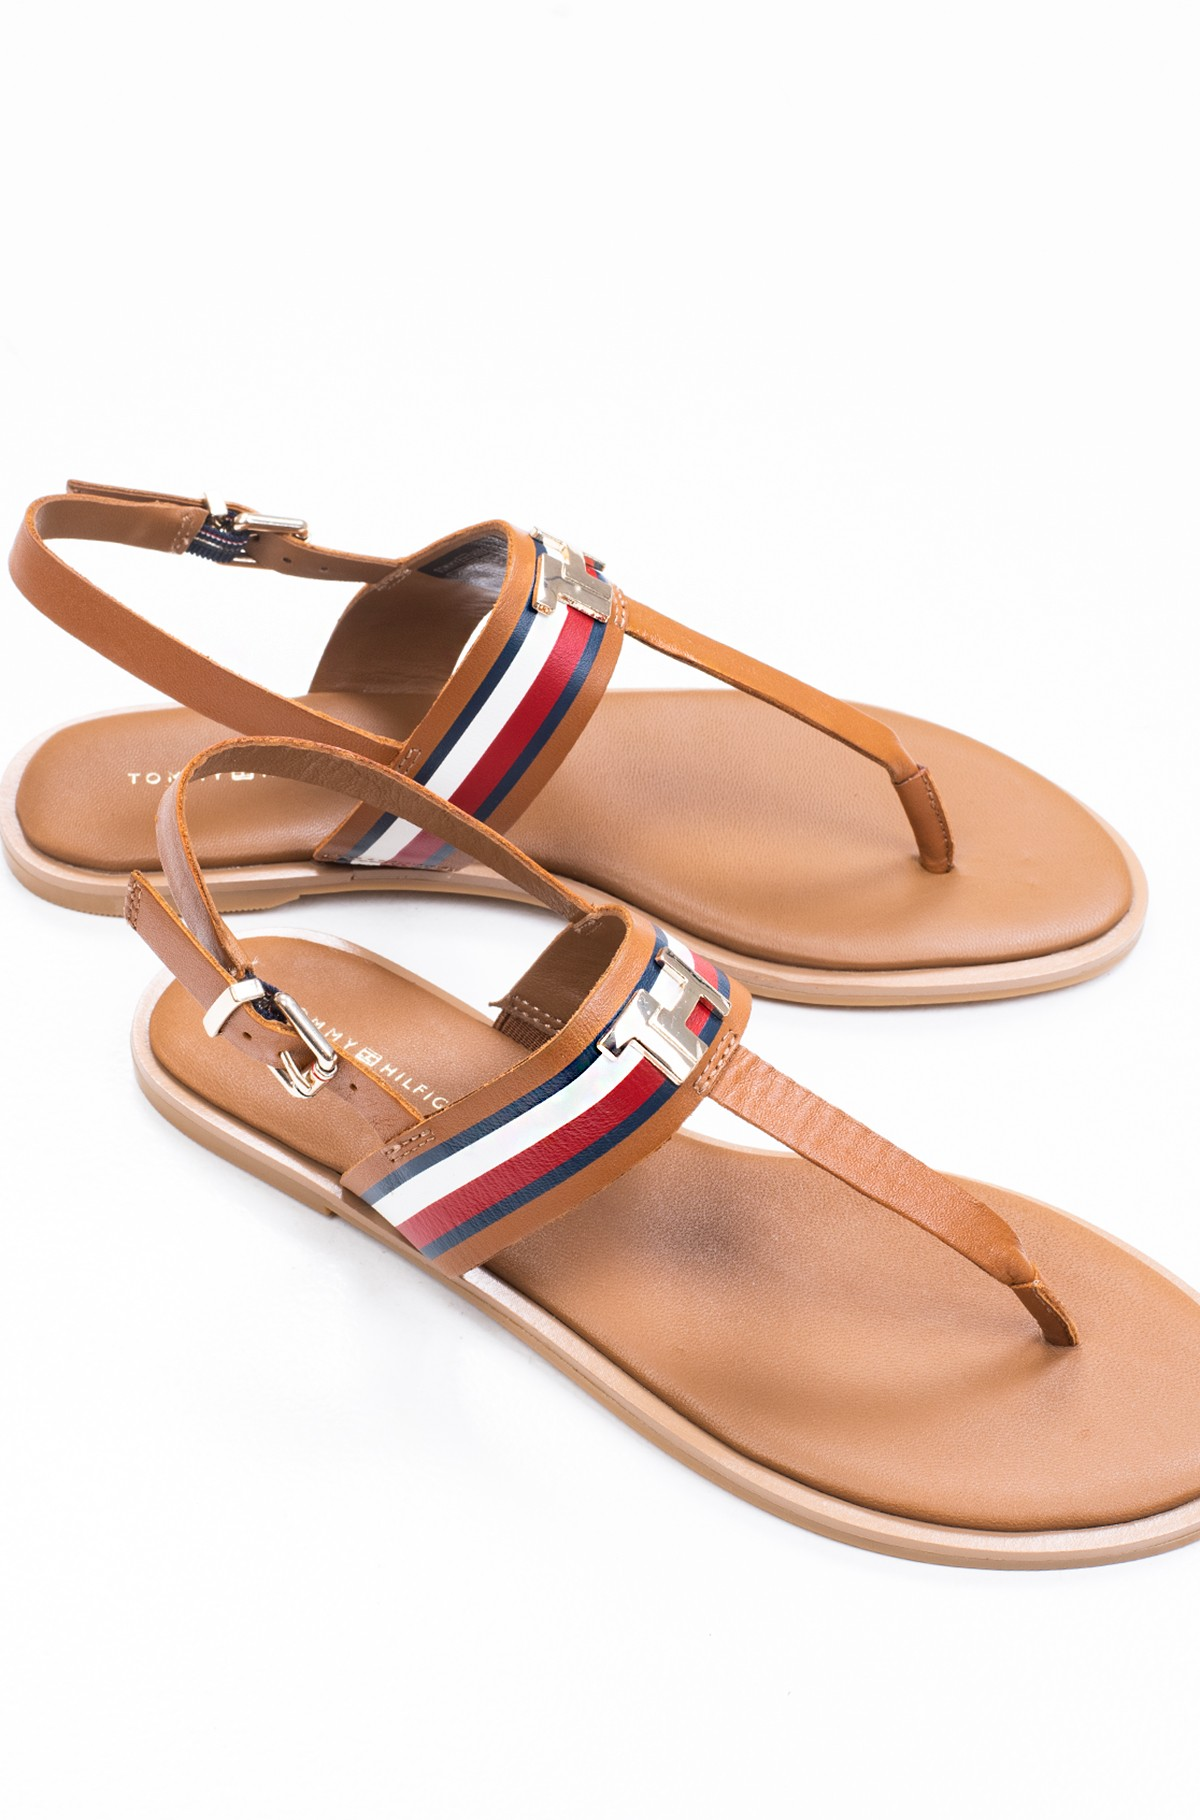 Sandals CORPORATE LEATHER FLAT SANDAL-full-2